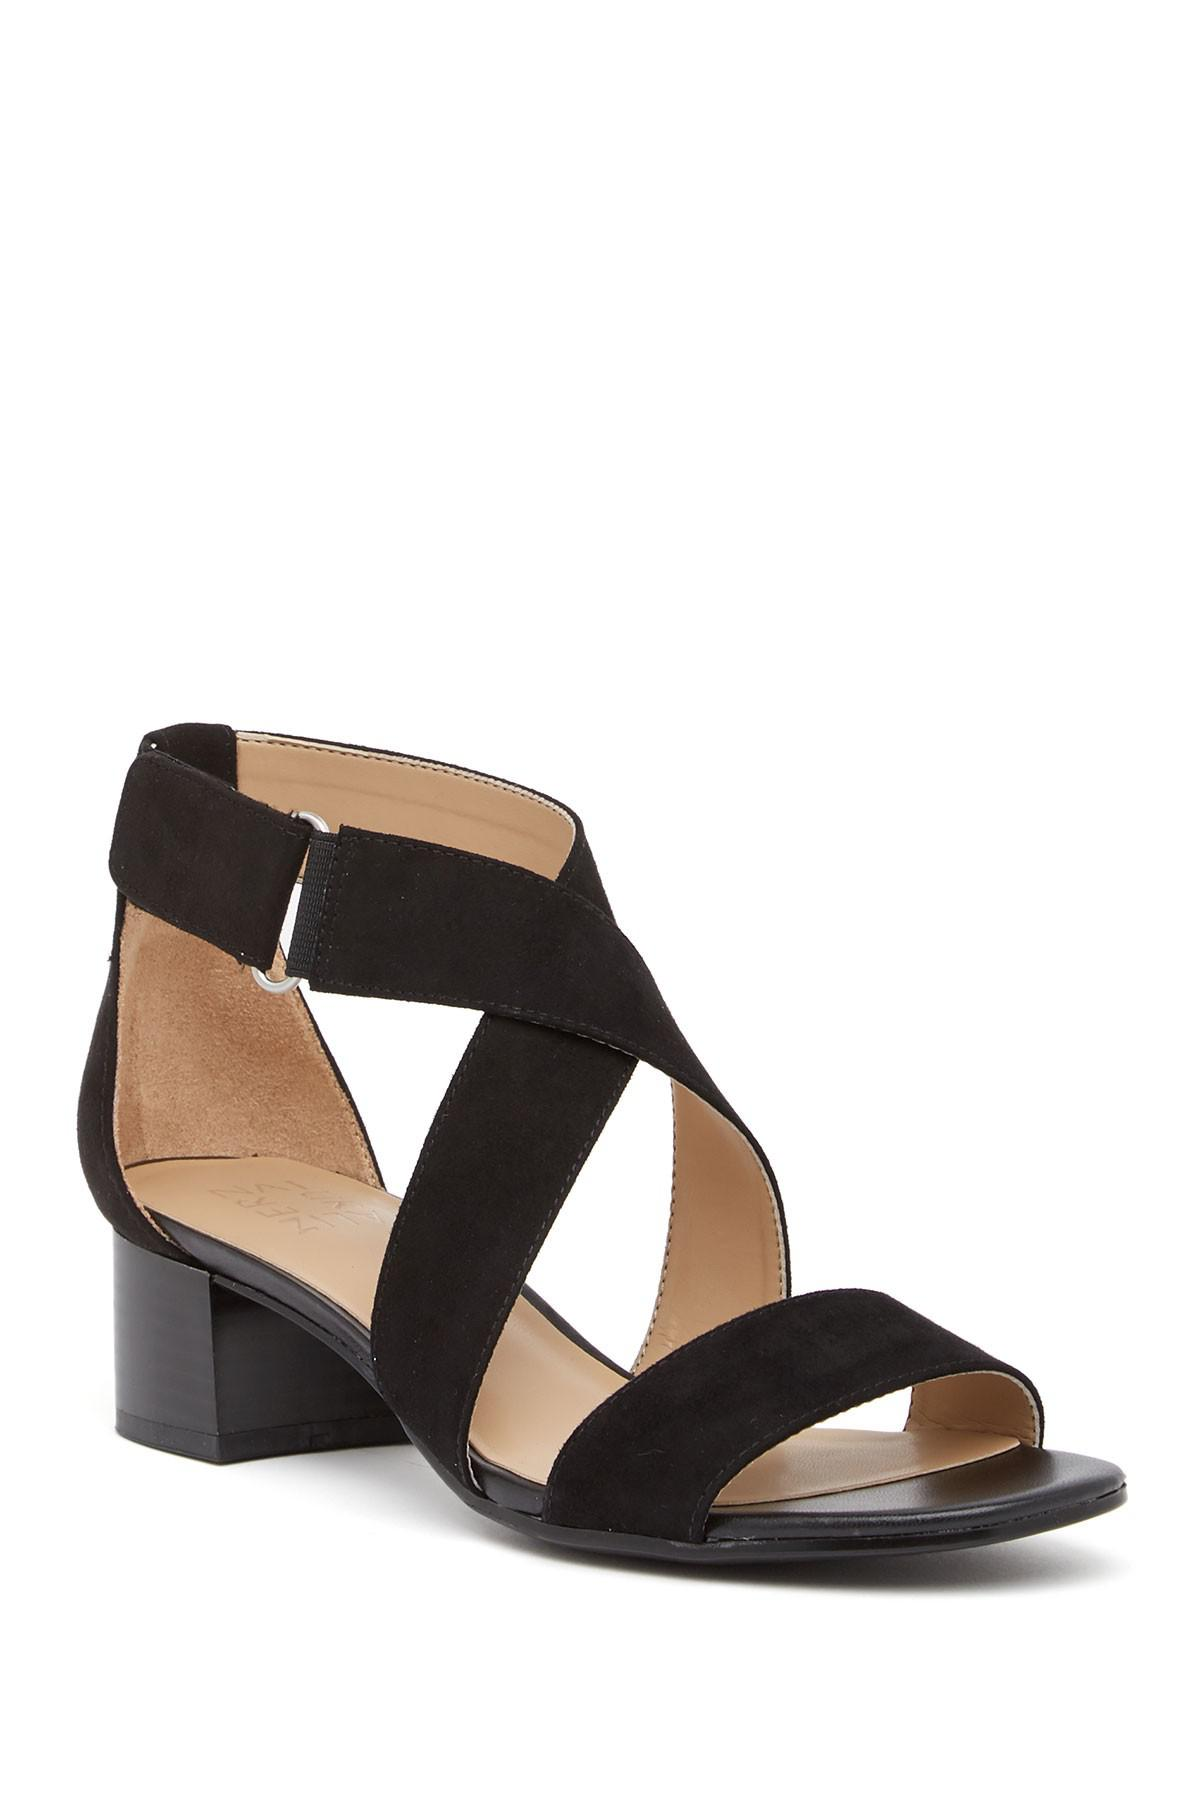 a6fa891f99f Lyst - Naturalizer Adele Block Heel Sandal - Wide Width Available in ...